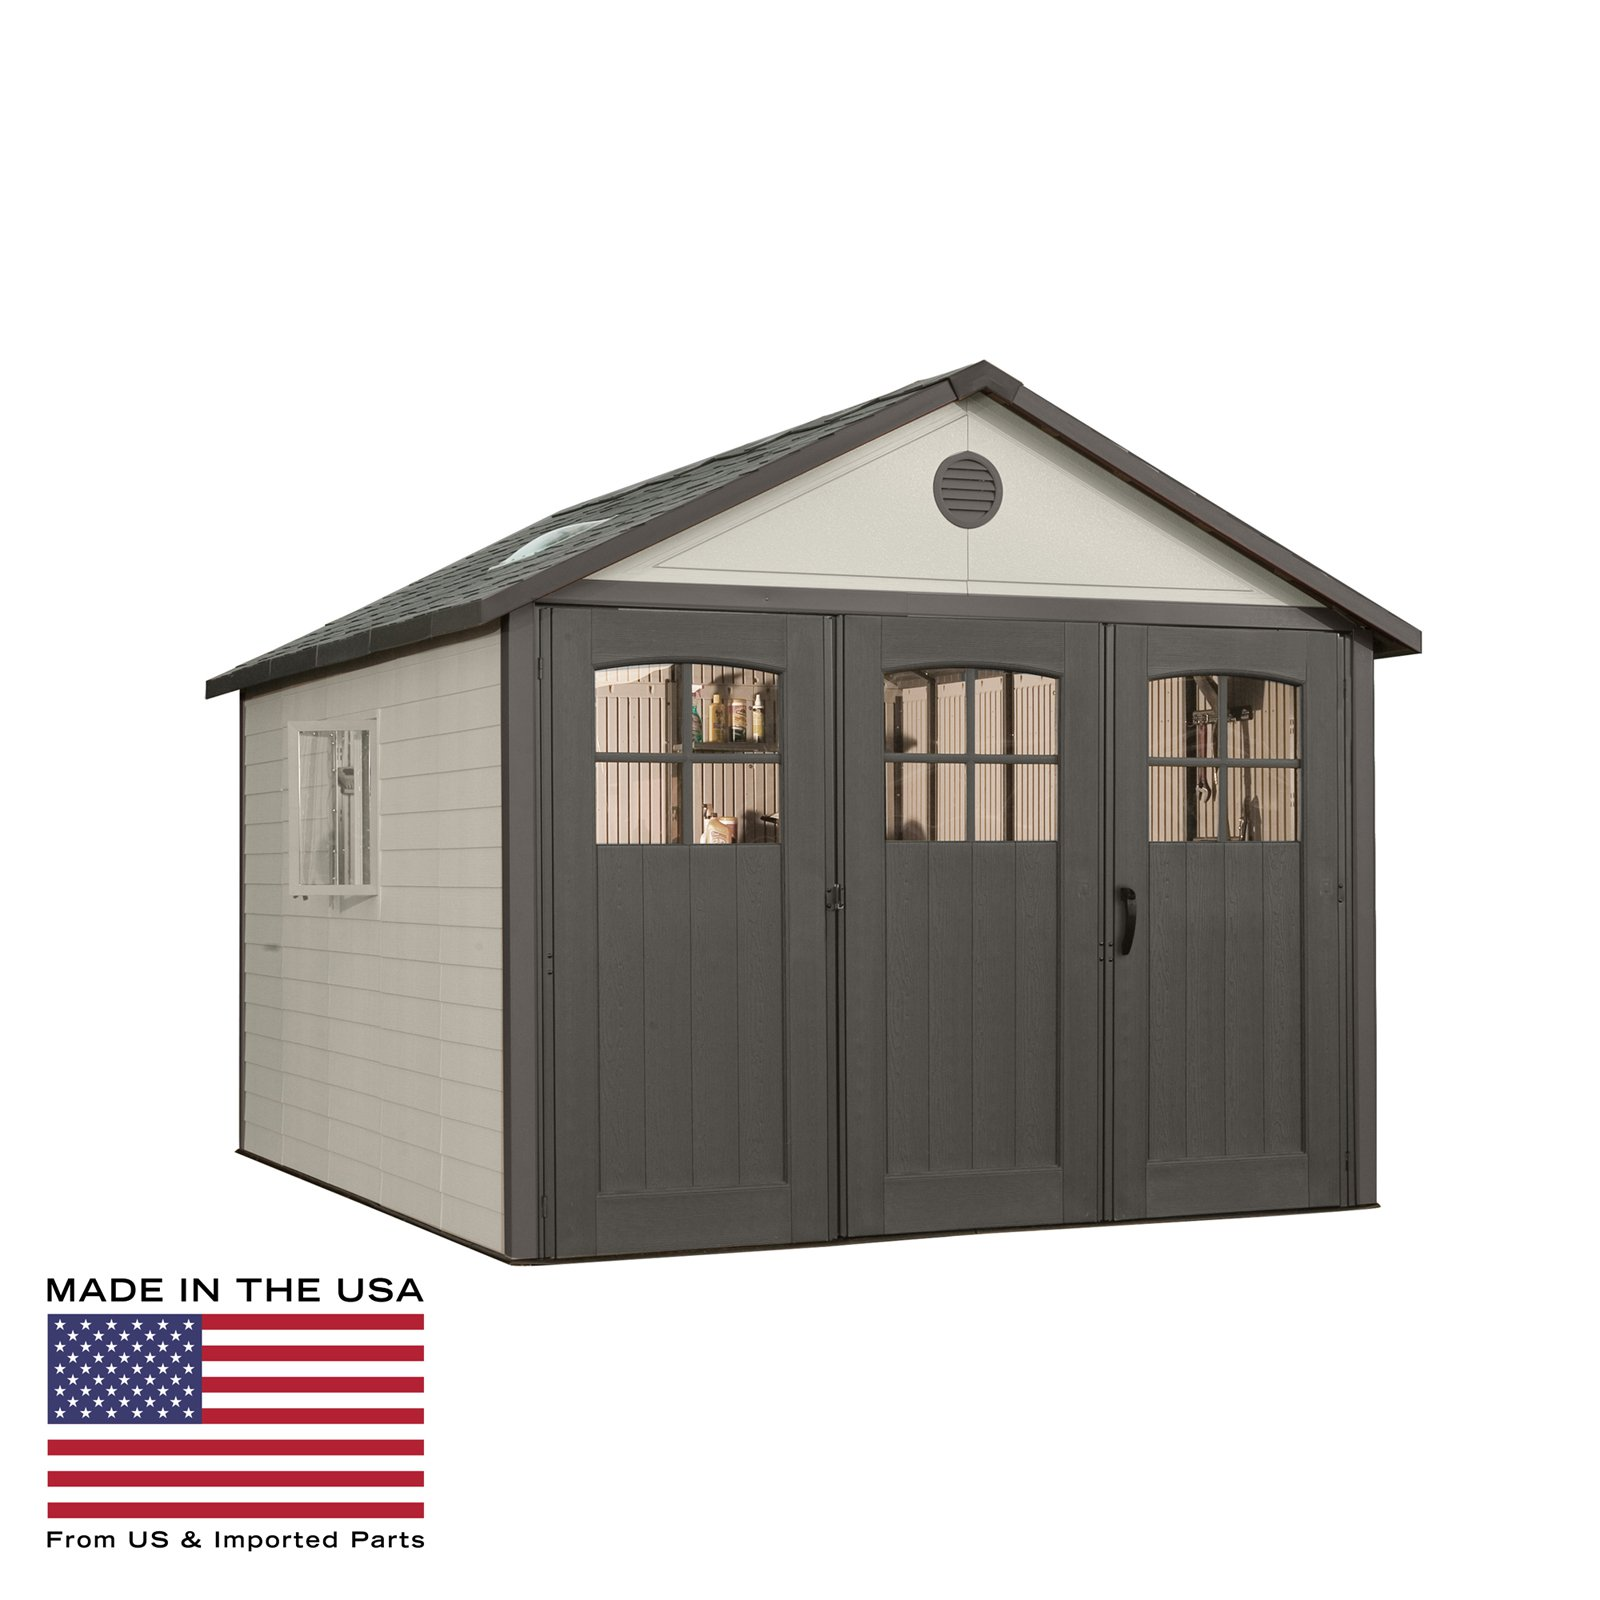 Lifetime 11 x 21 ft. Outdoor Storage Shed with Tri Fold Doors by Lifetime Products